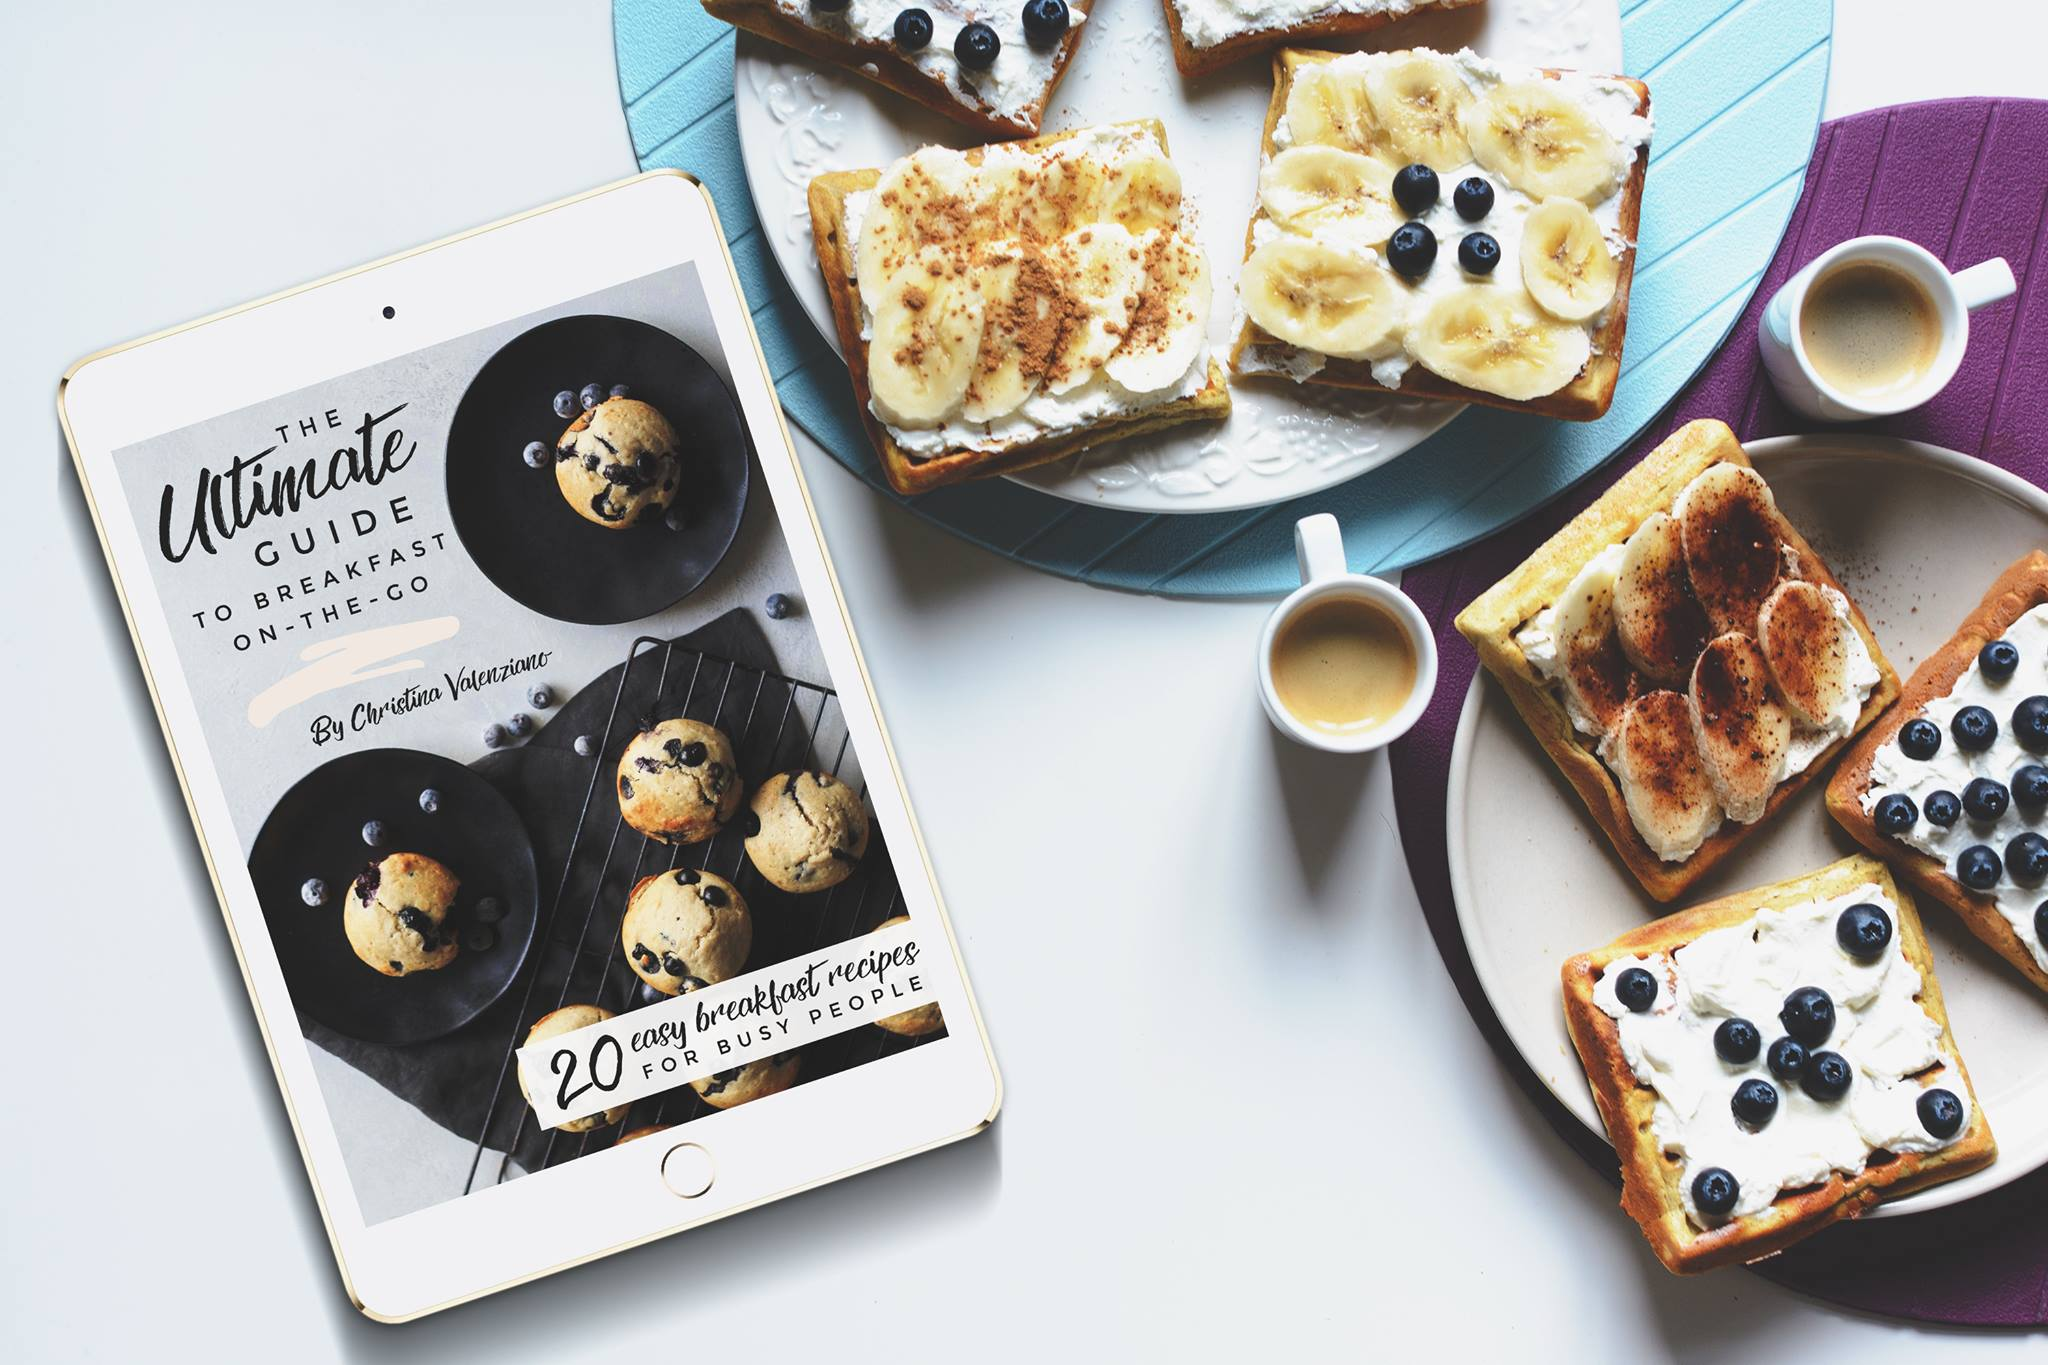 The Ultimate Guide to Breakfast On-The-Go